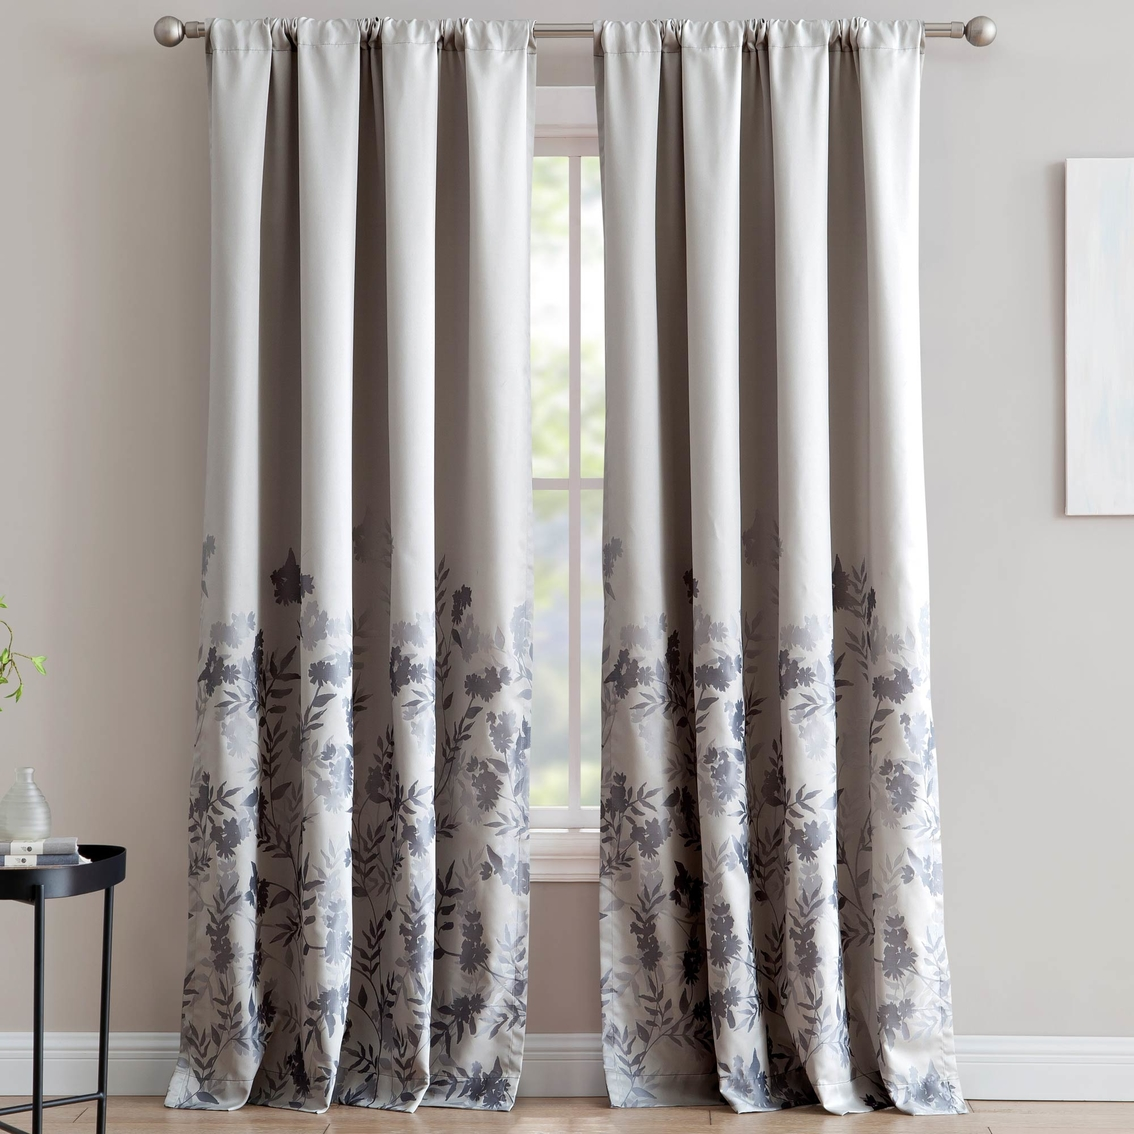 Jacquard Curtains 1888 Mills Isabelle Jacquard Single Window Curtain Panel With Rod